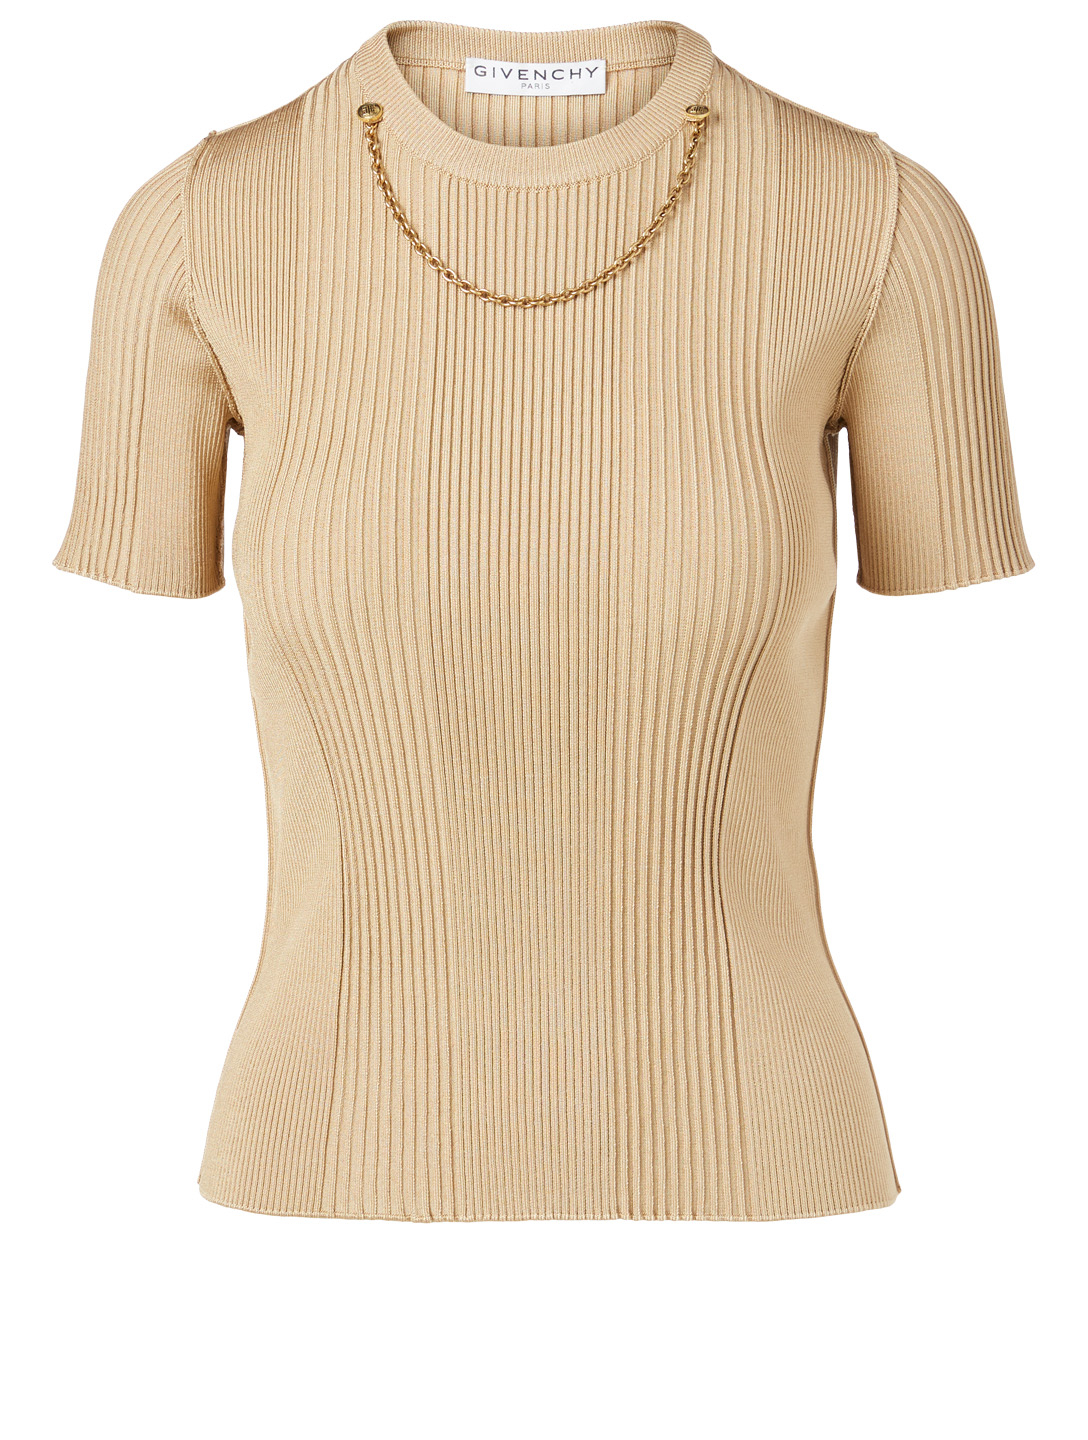 GIVENCHY Ribbed Knit Top With Chain Women's Beige